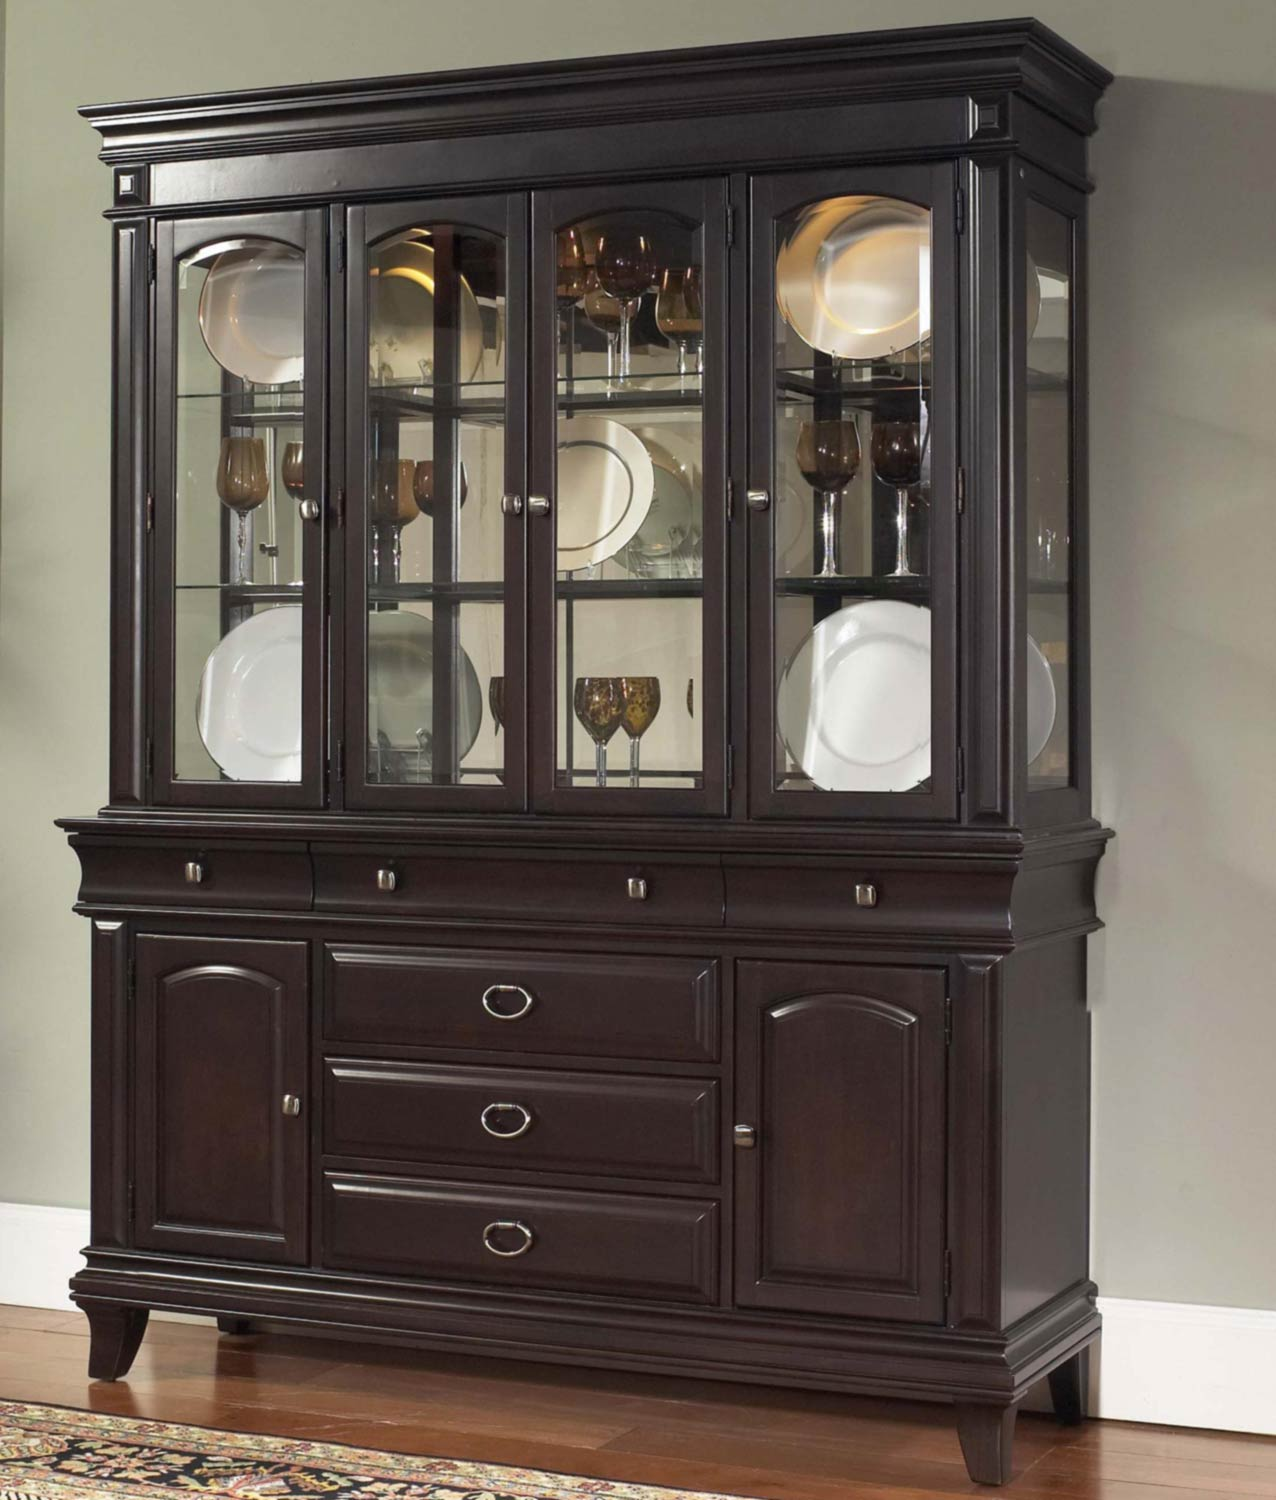 Pulaski Kendall China Cabinet Pf 8098 141 142 At